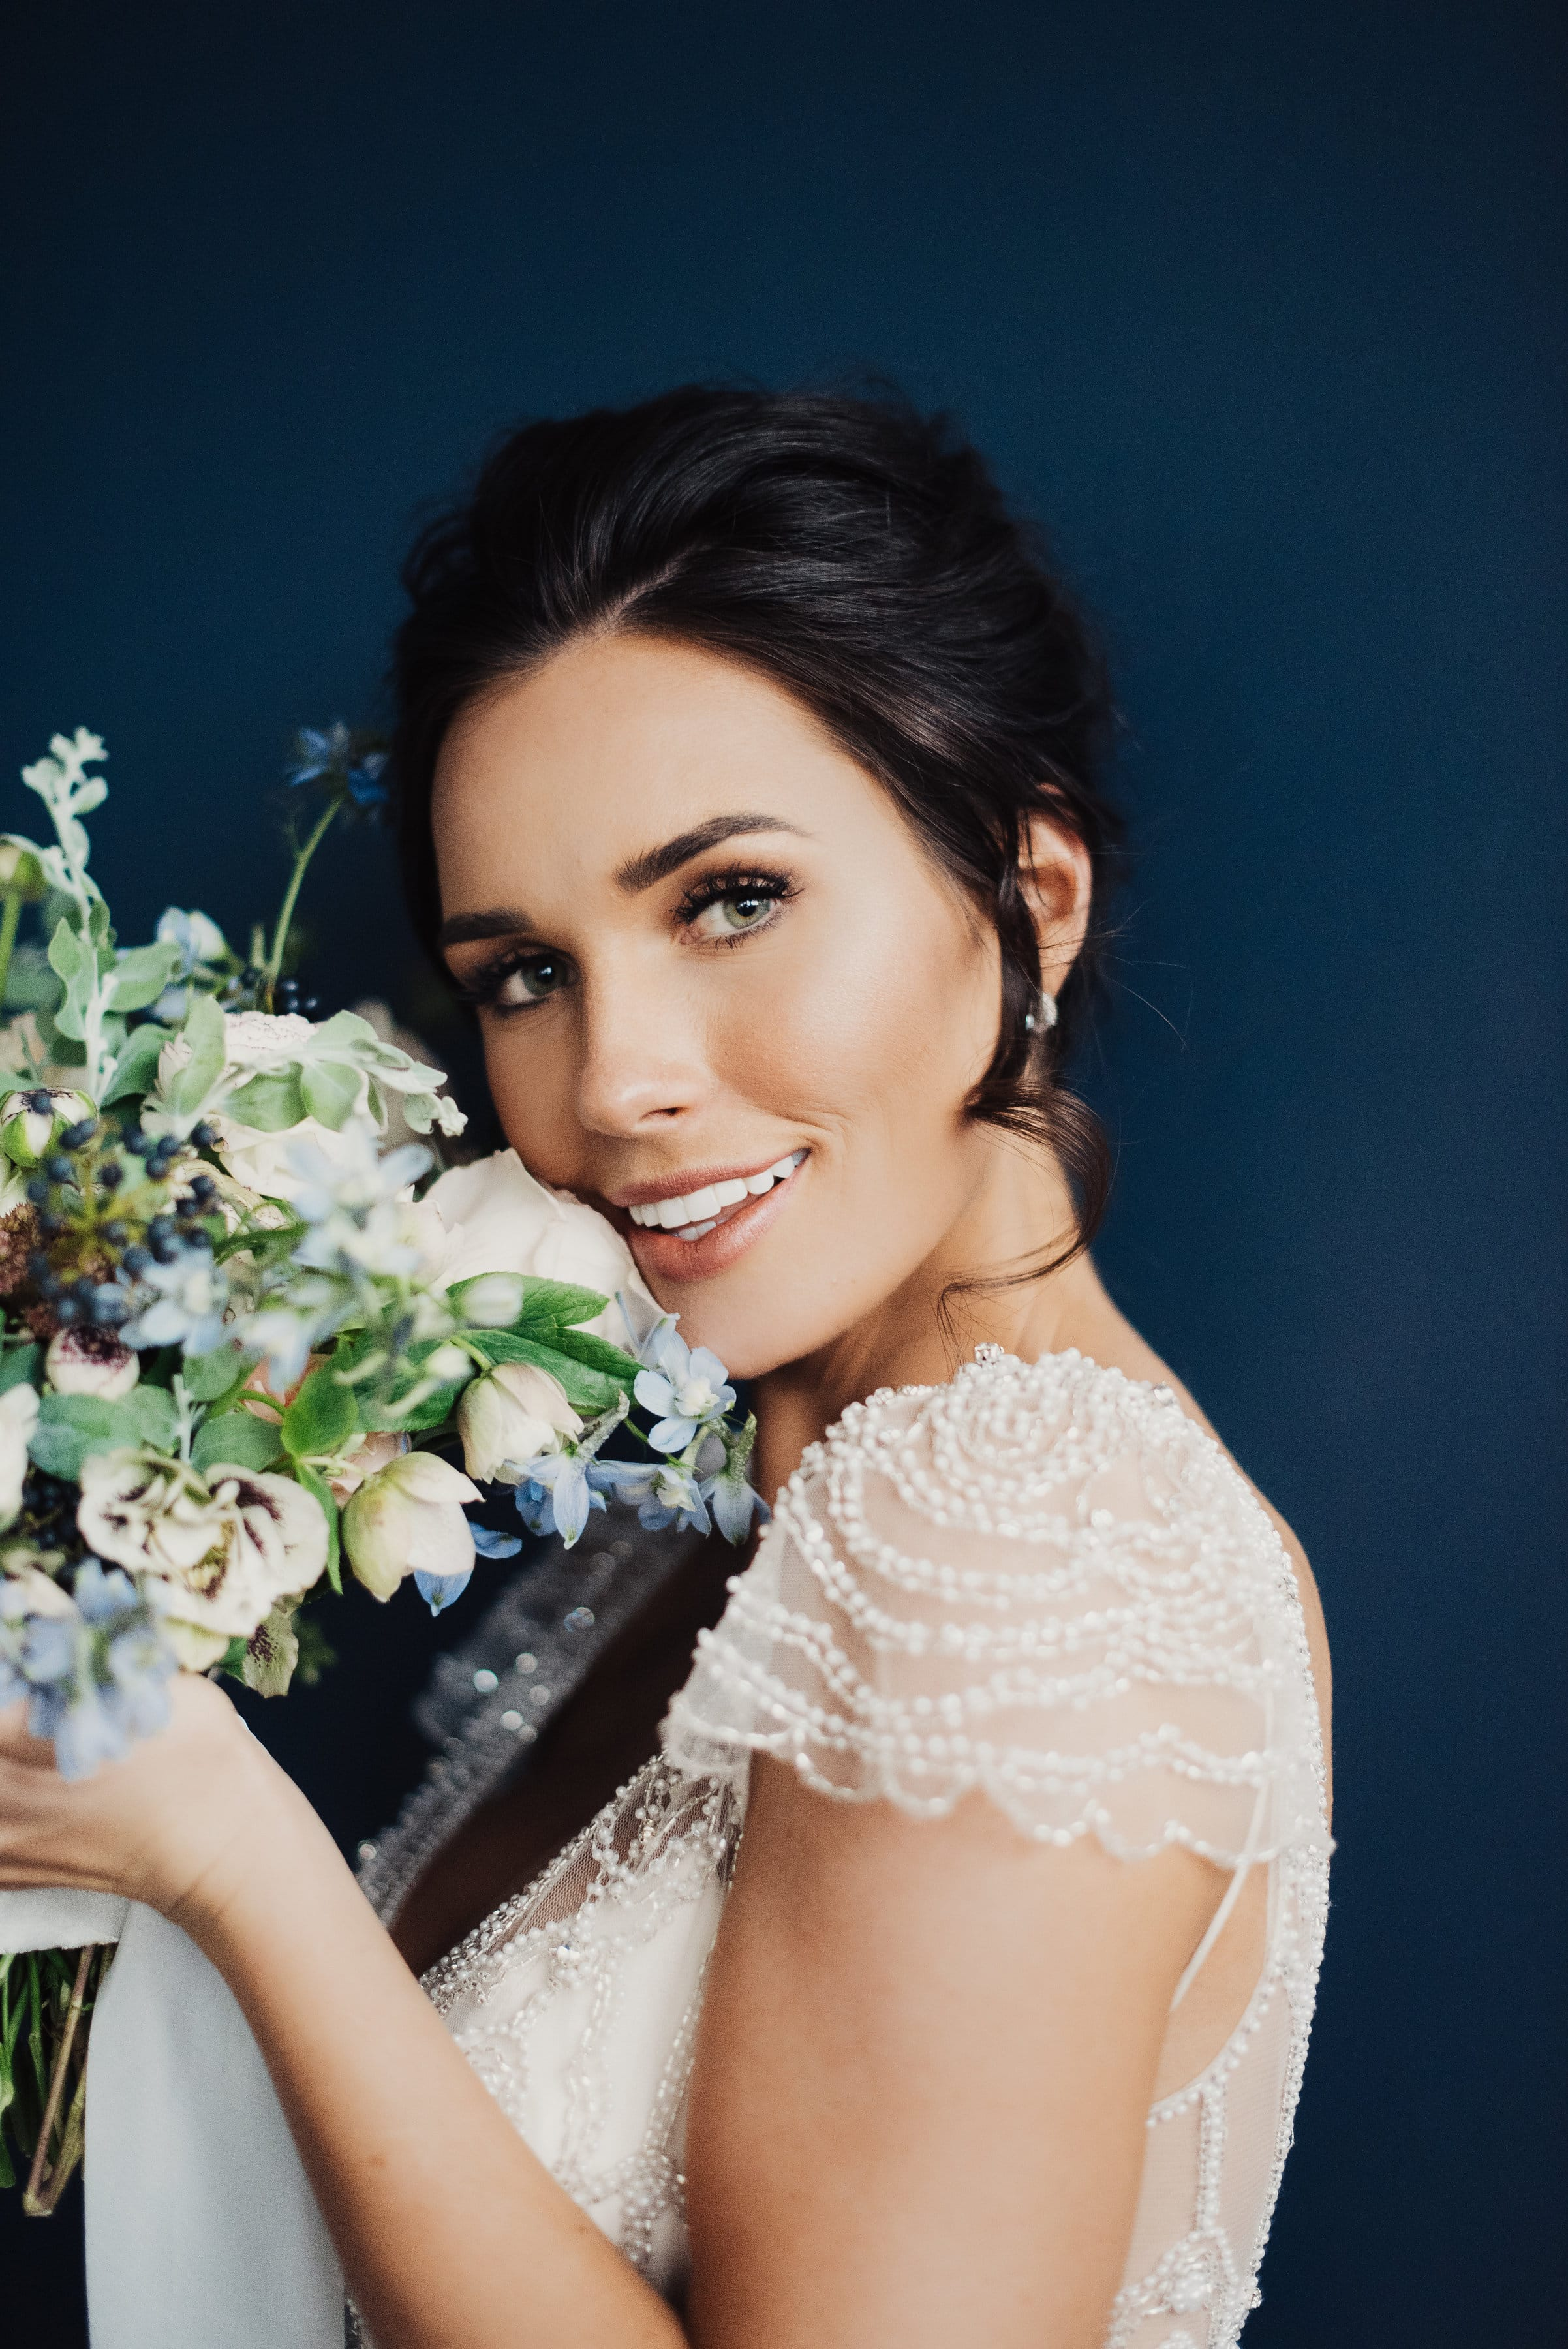 Something Blue Shoot with 3 Vintage-inspired Wedding Dresses - Ettia by Maggie Sottero.